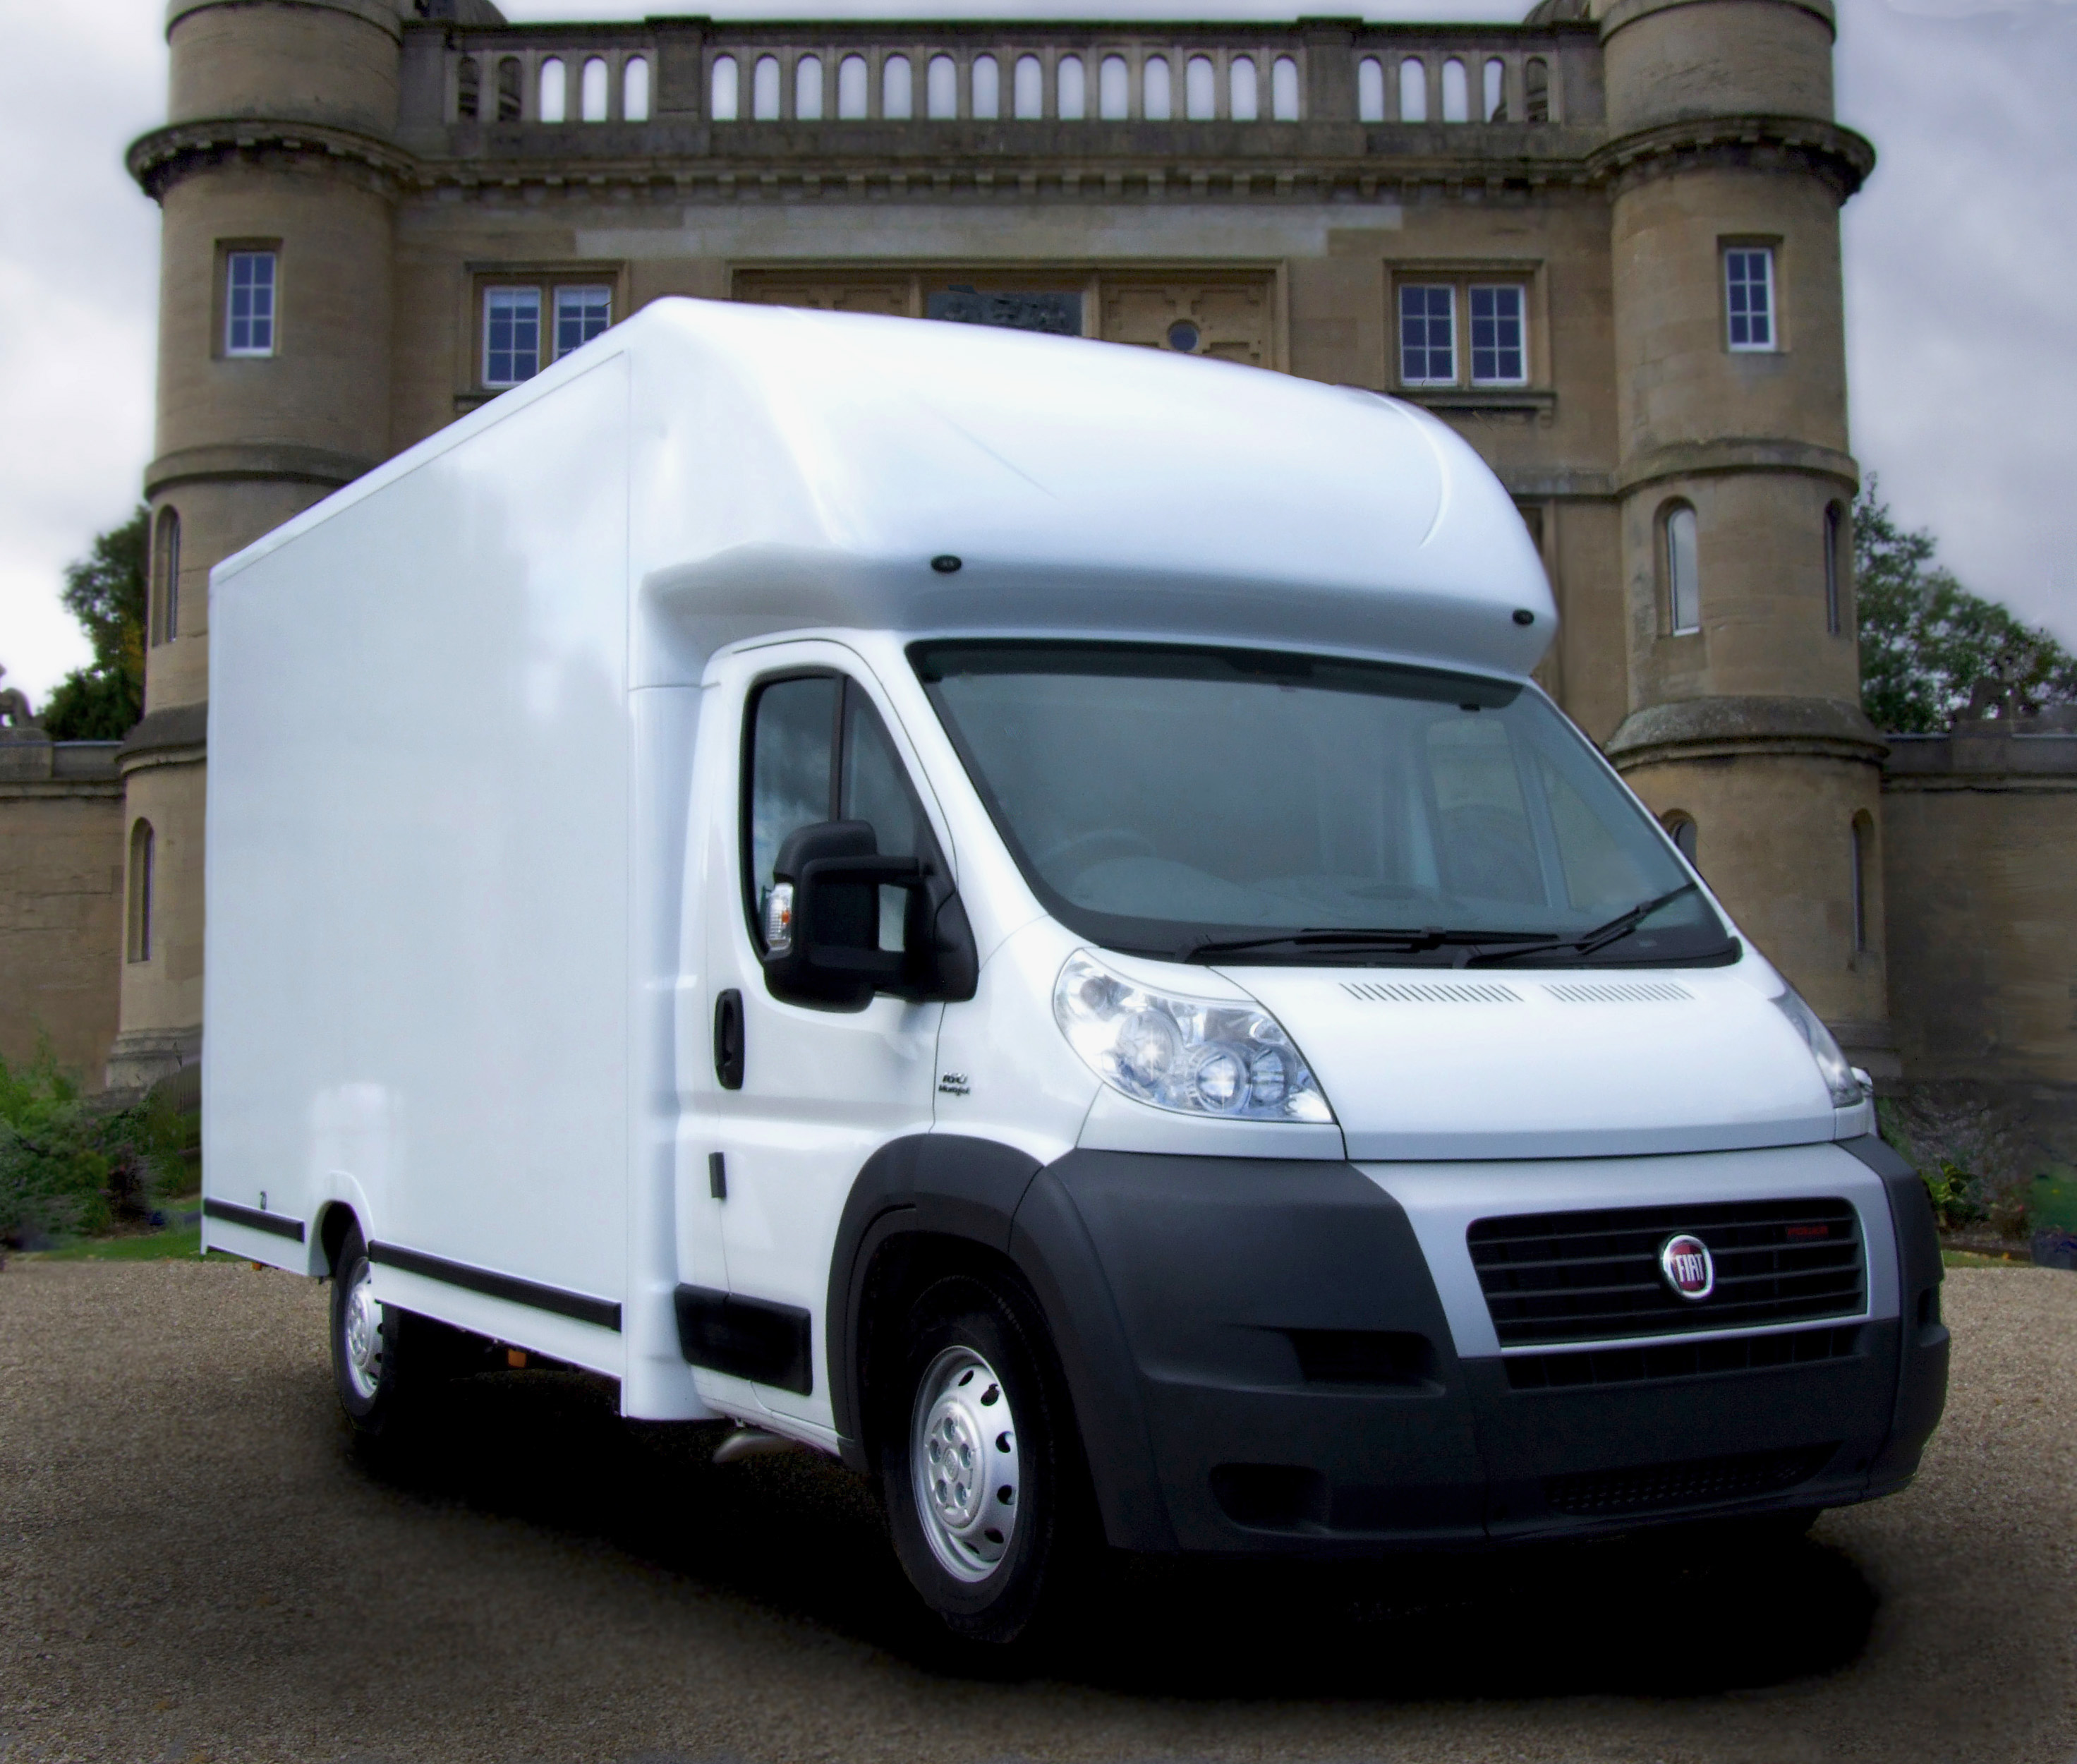 We have a stock of 6 Fiat Ducato Low Loaders about to built